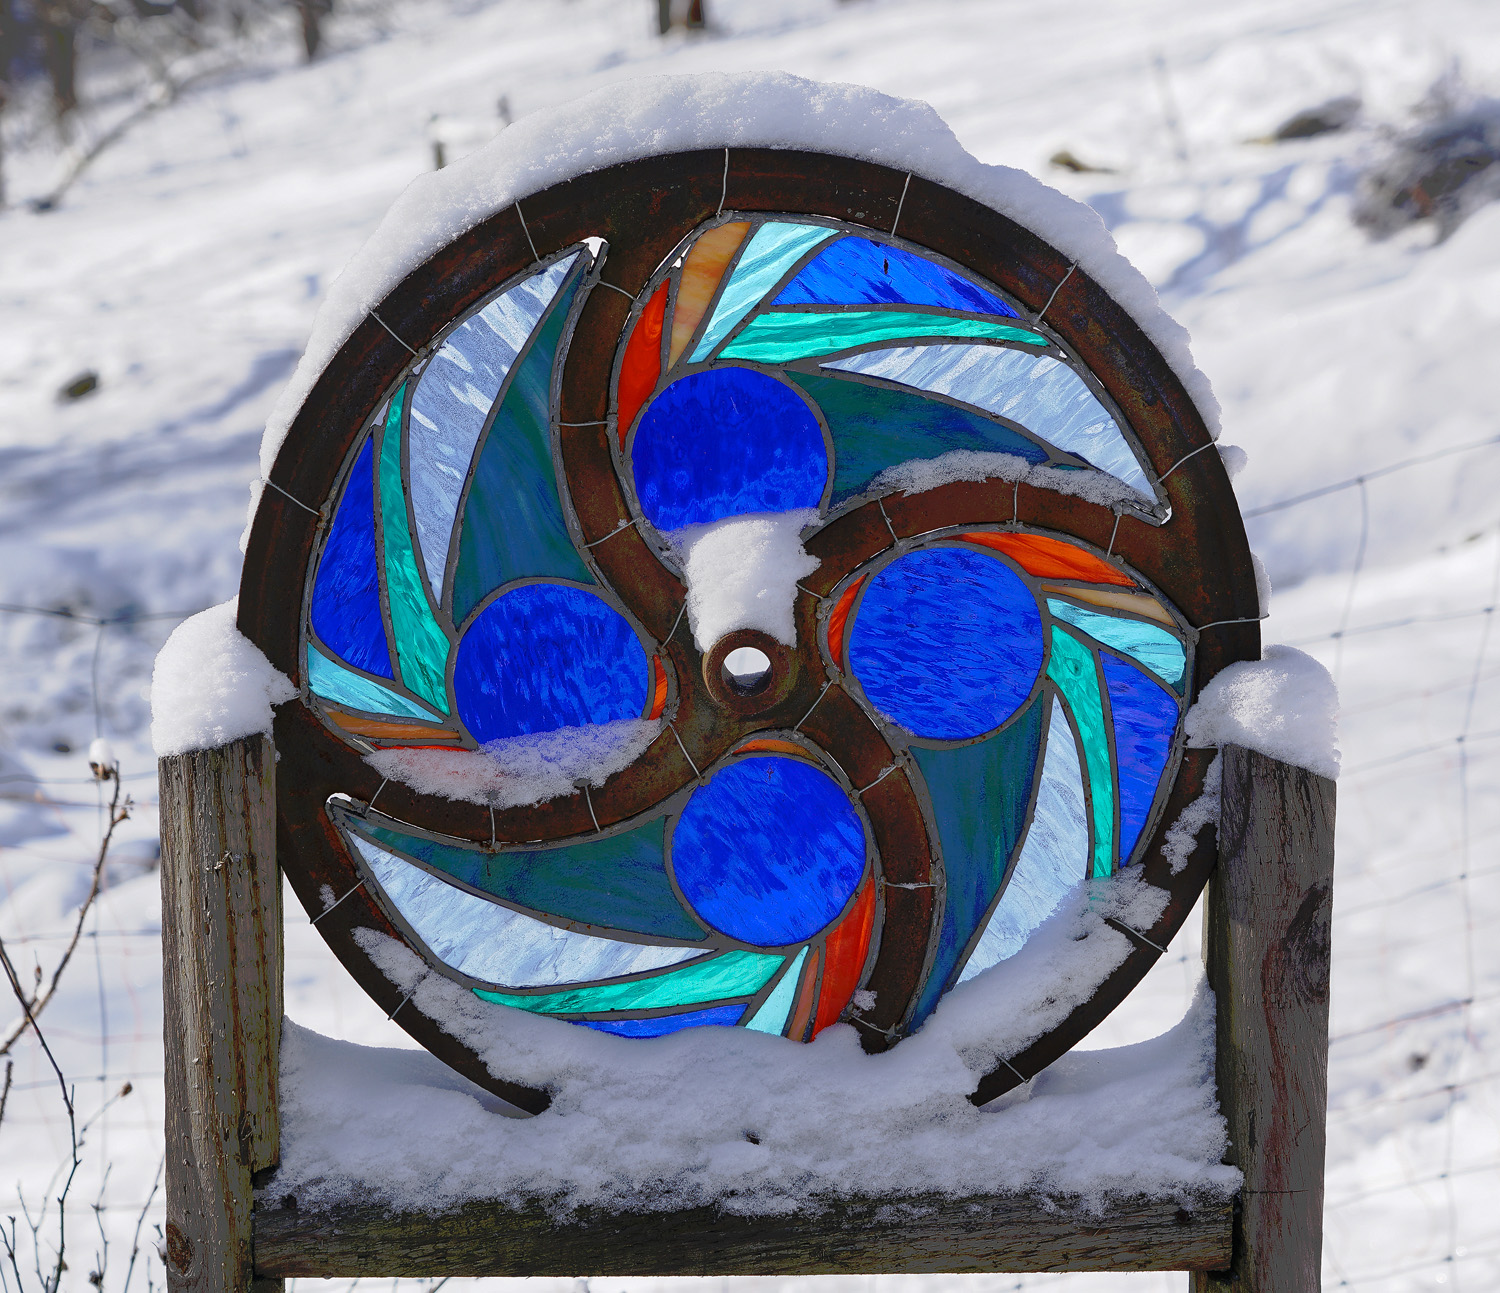 cold art author sava gregory and verena thanks